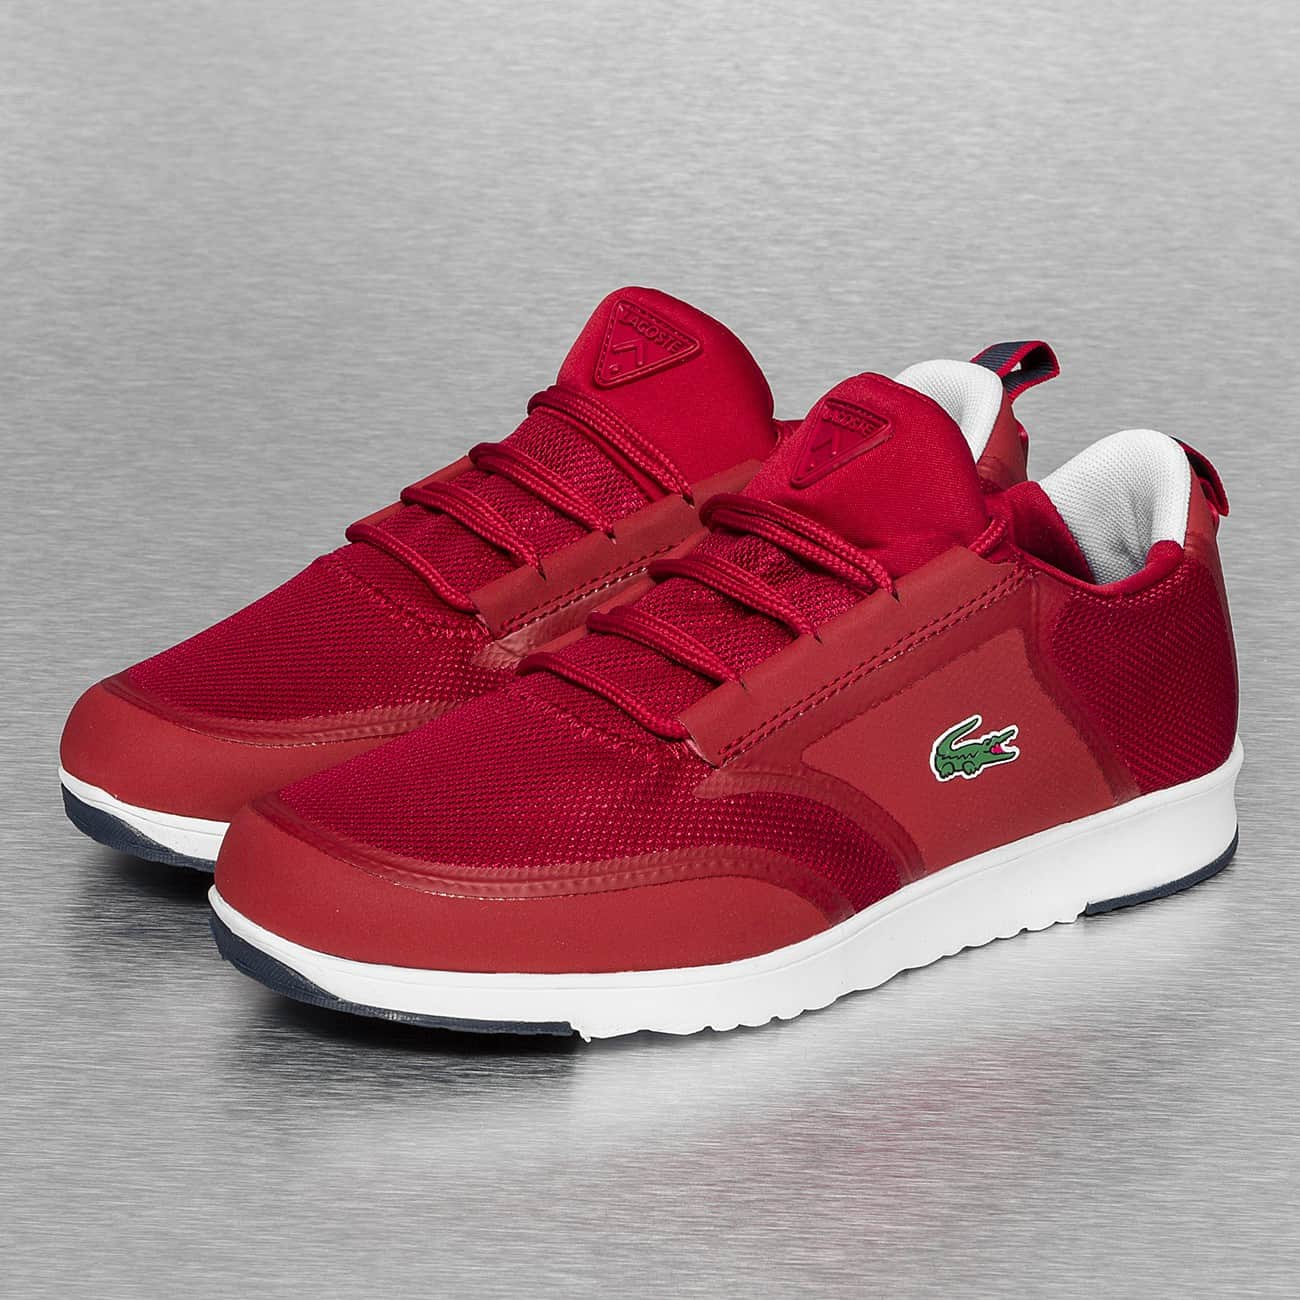 5ad03e06e4 Homme Lacoste Lacoste Homme Chaussure Rouge Chaussure Rouge wqFx7nTv